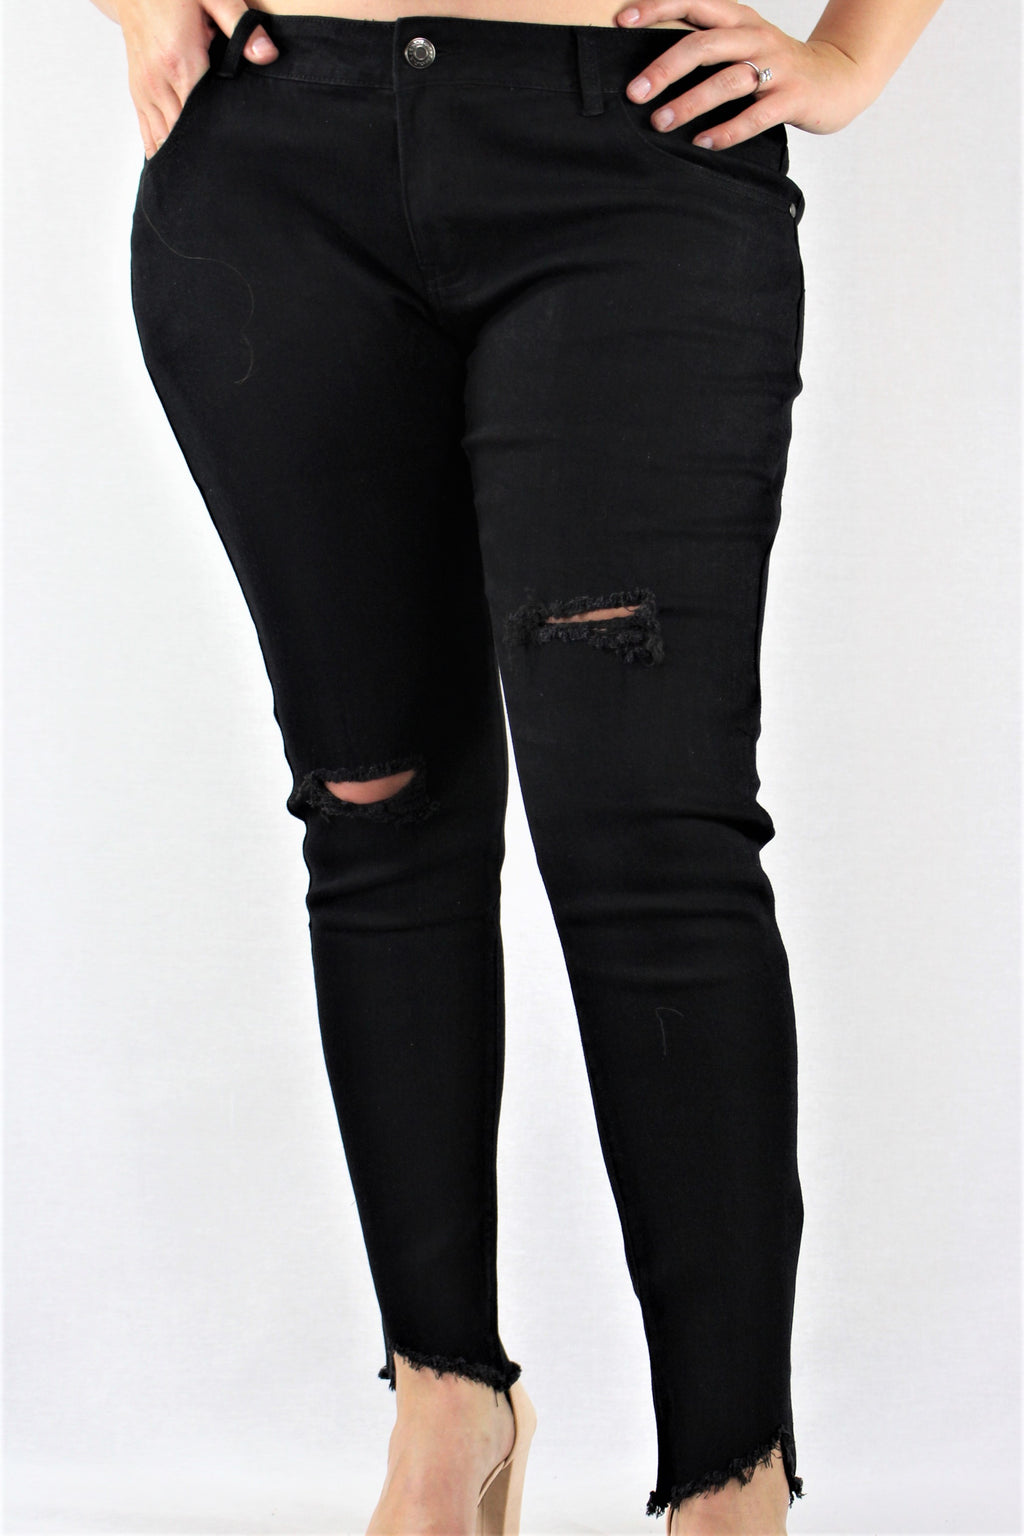 Women's Plus Size Black Ripped Jeans